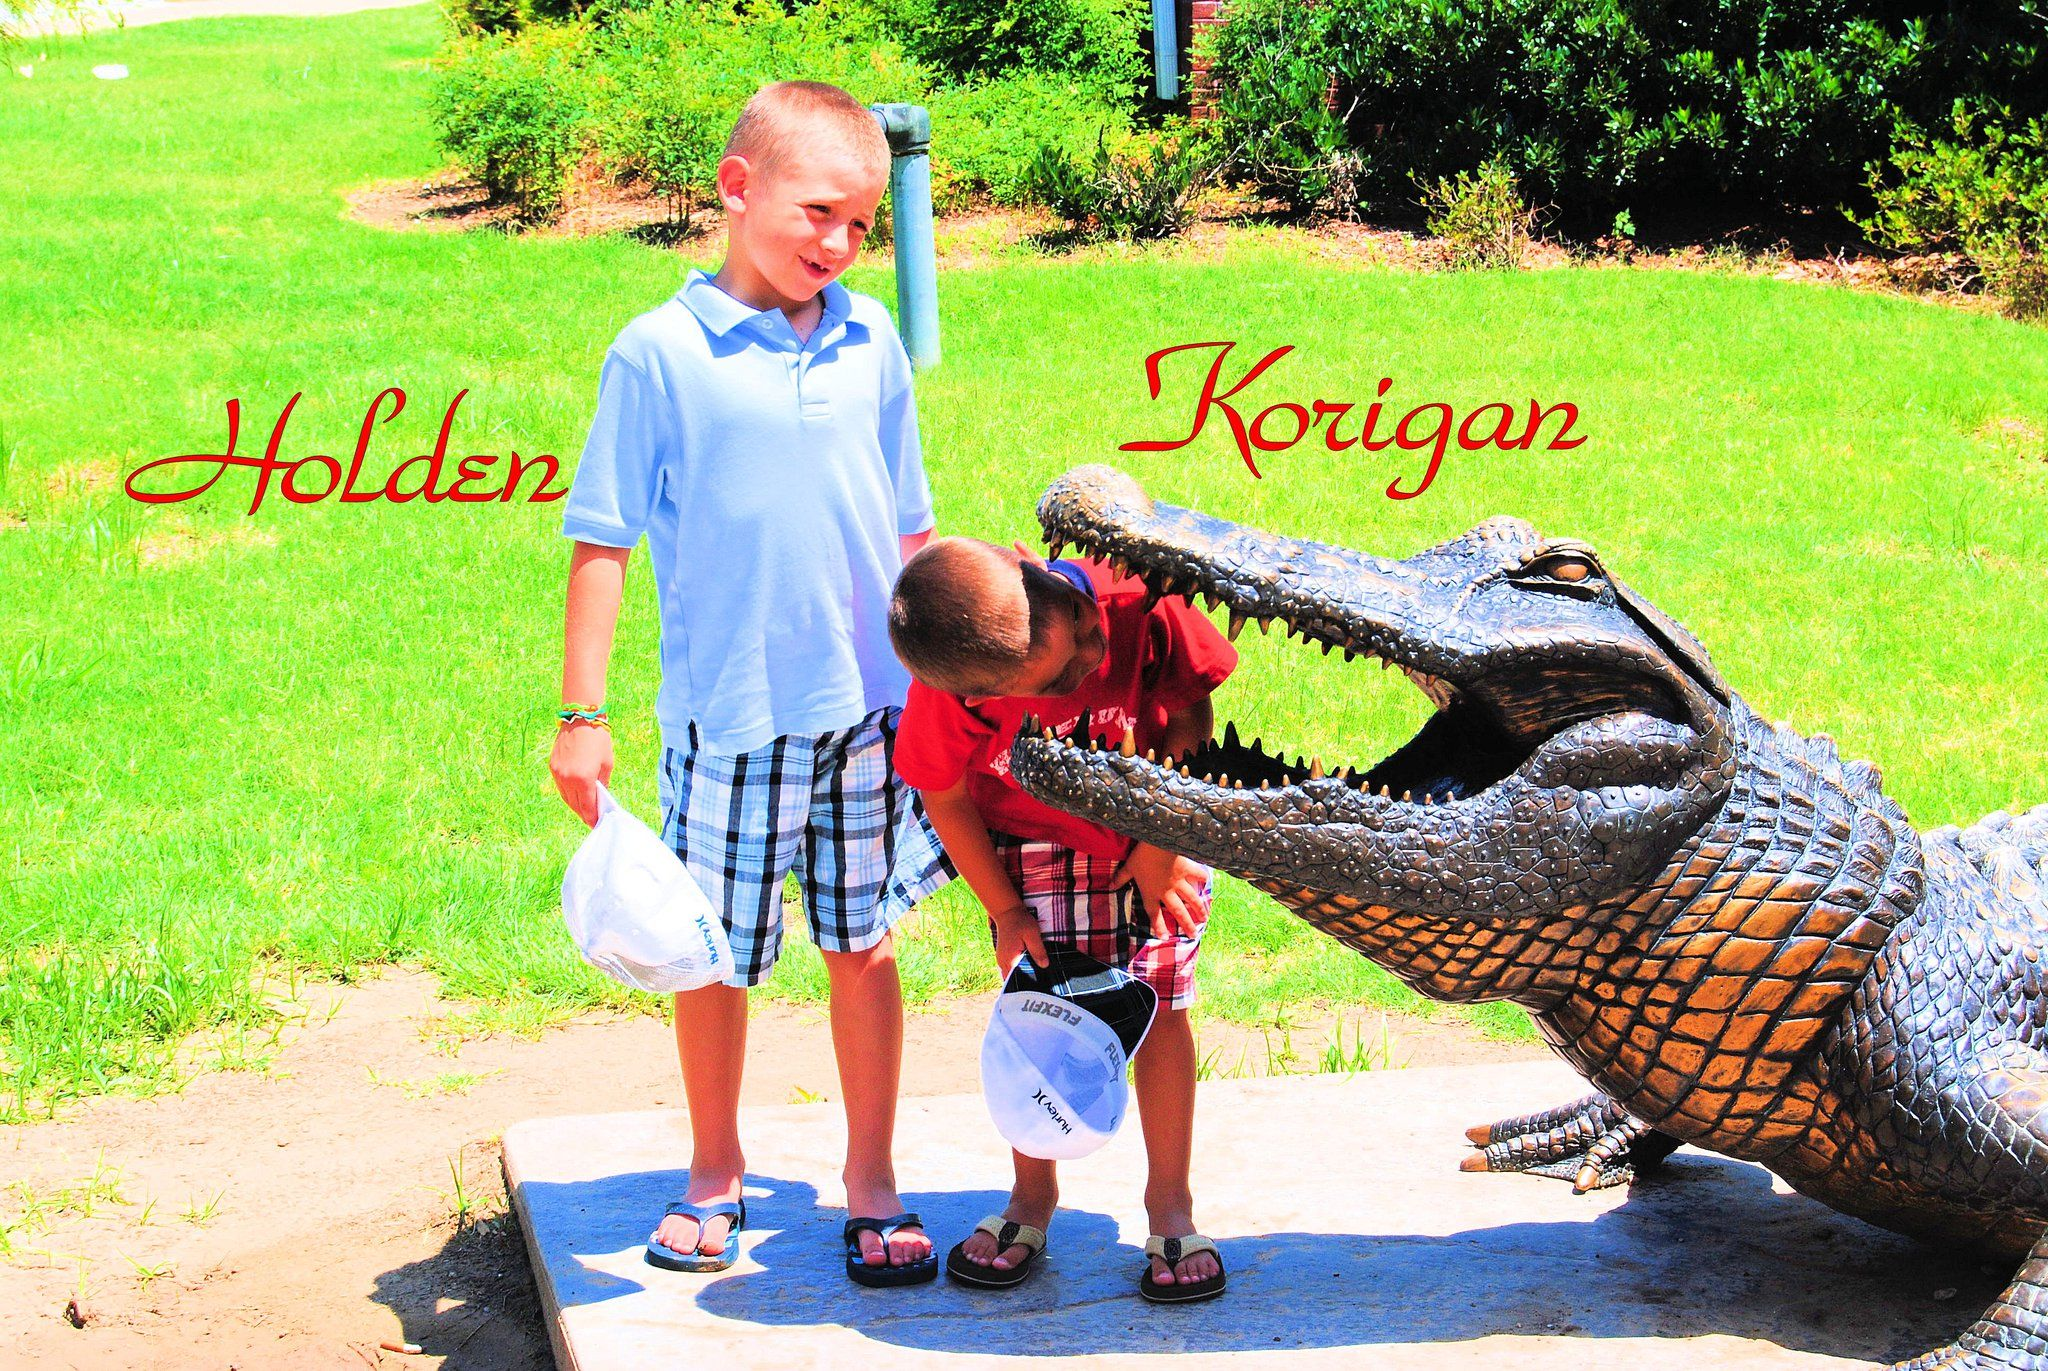 Holden and Korigan goofing